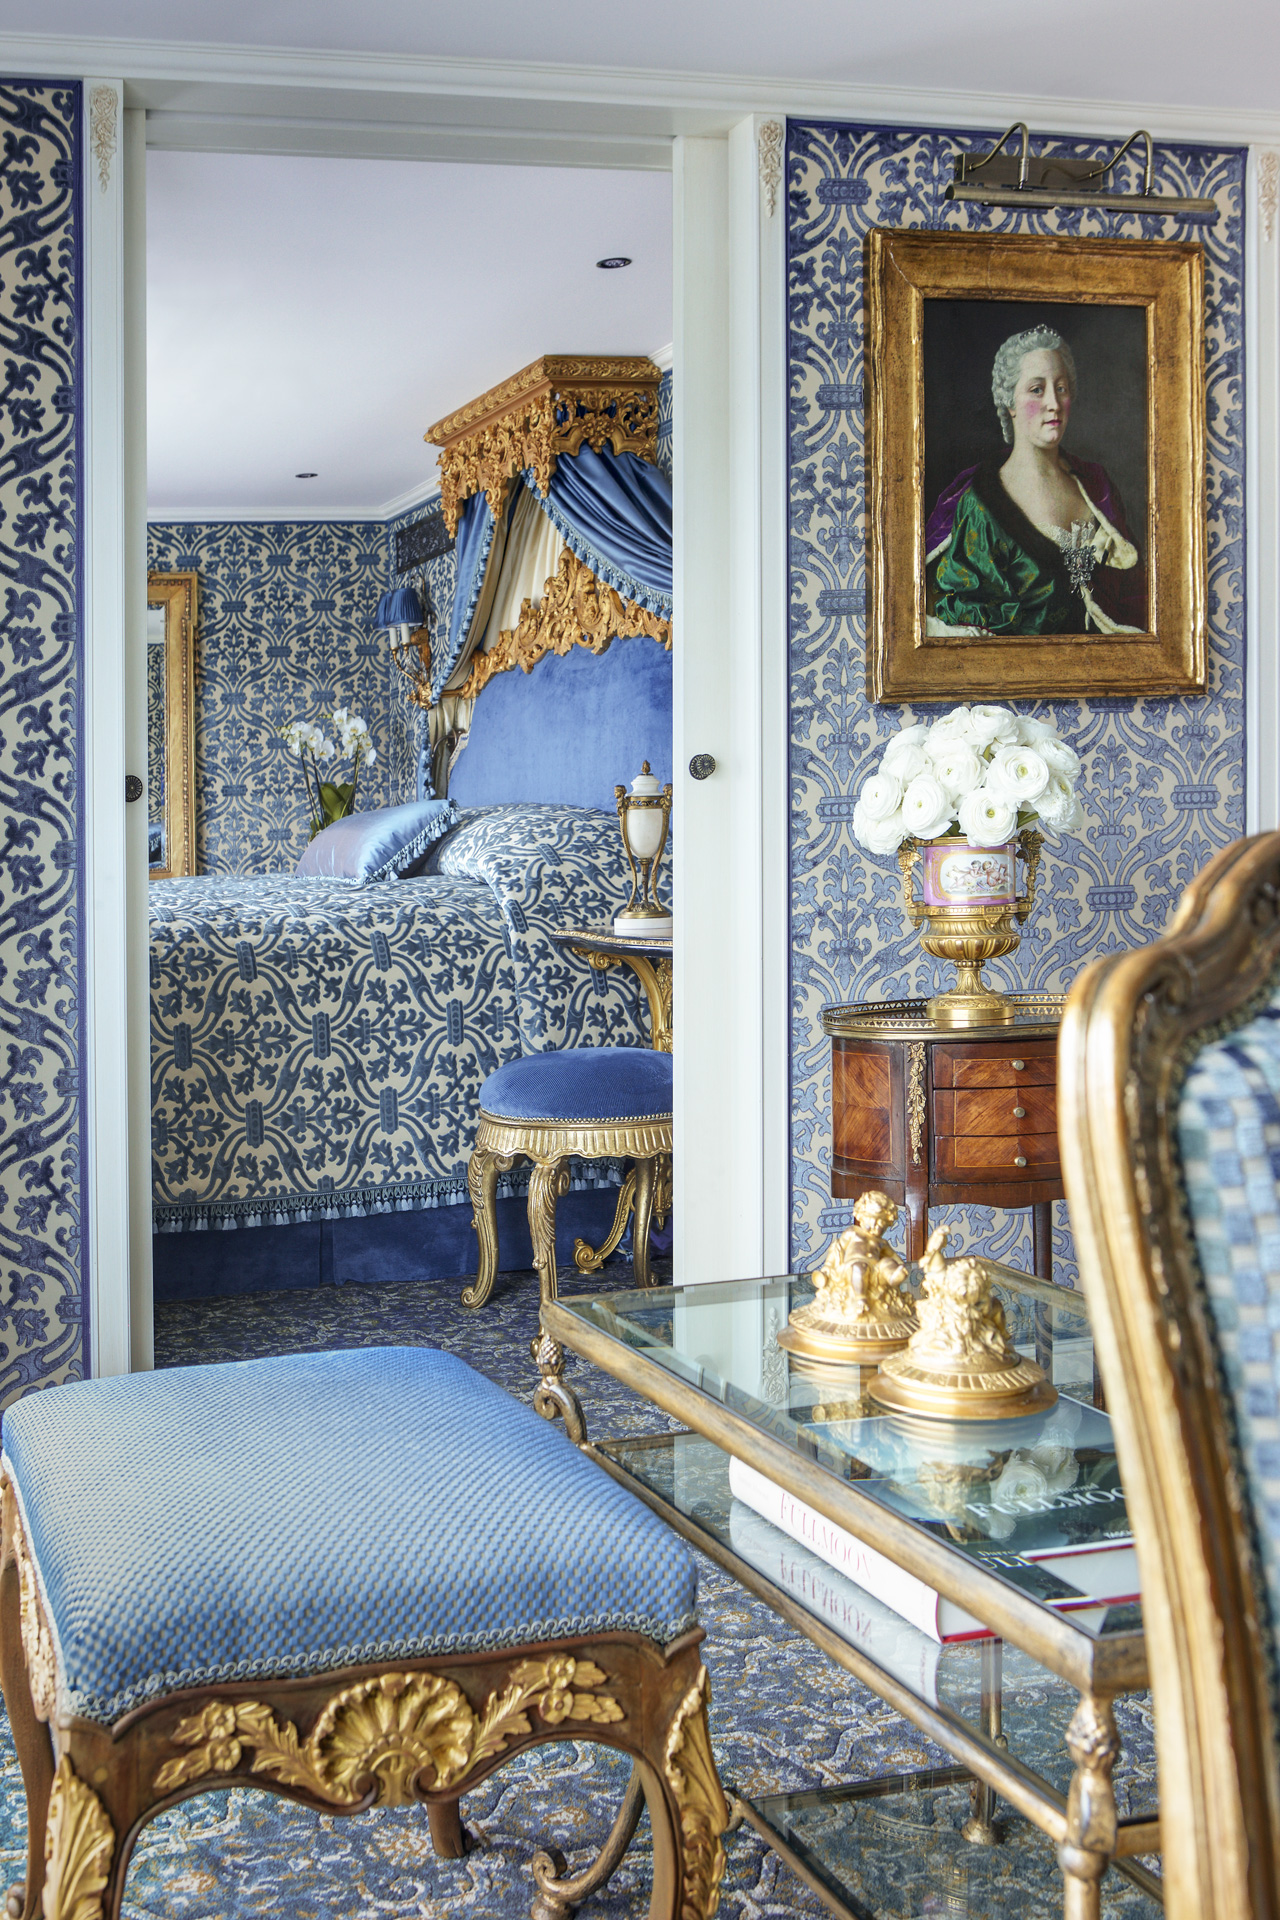 UNIWORLD Boutique River Cruises SS Maria Theresa Accommodation Royal Suite 2.jpg